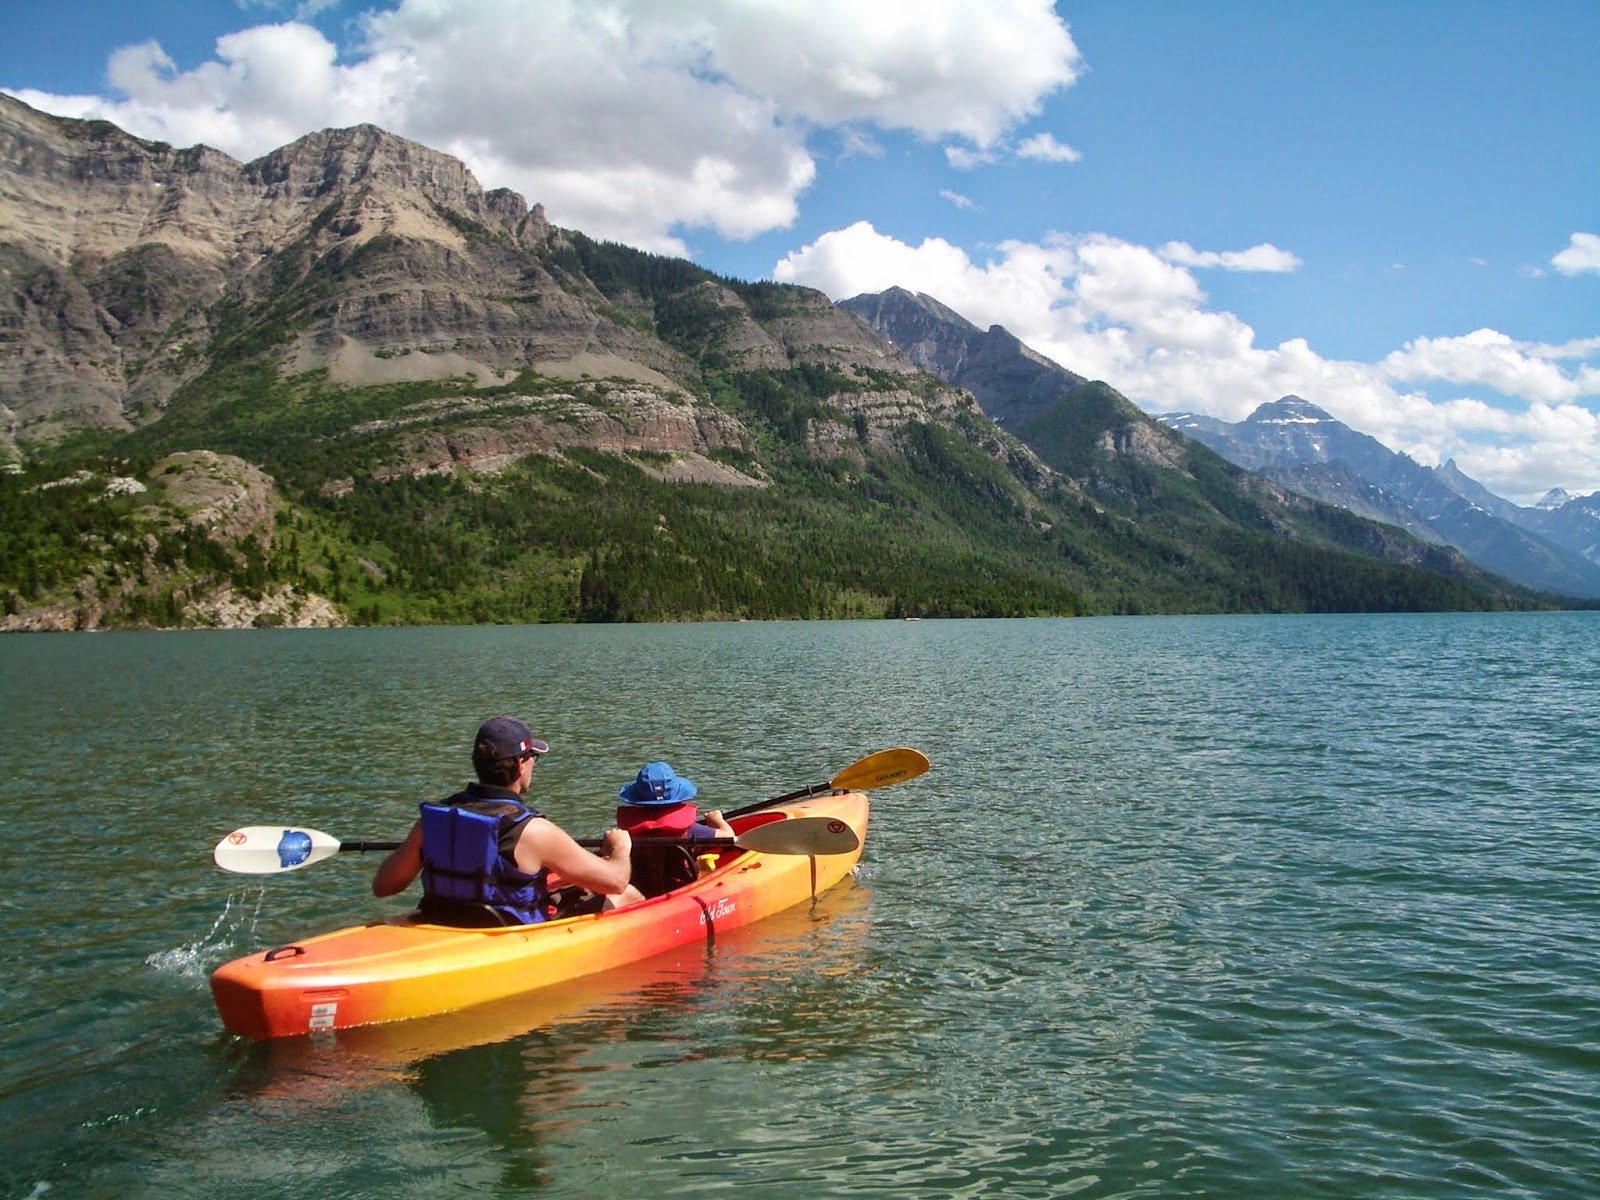 Communication on this topic: 8 Paddle Adventures in National Parks, 8-paddle-adventures-in-national-parks/